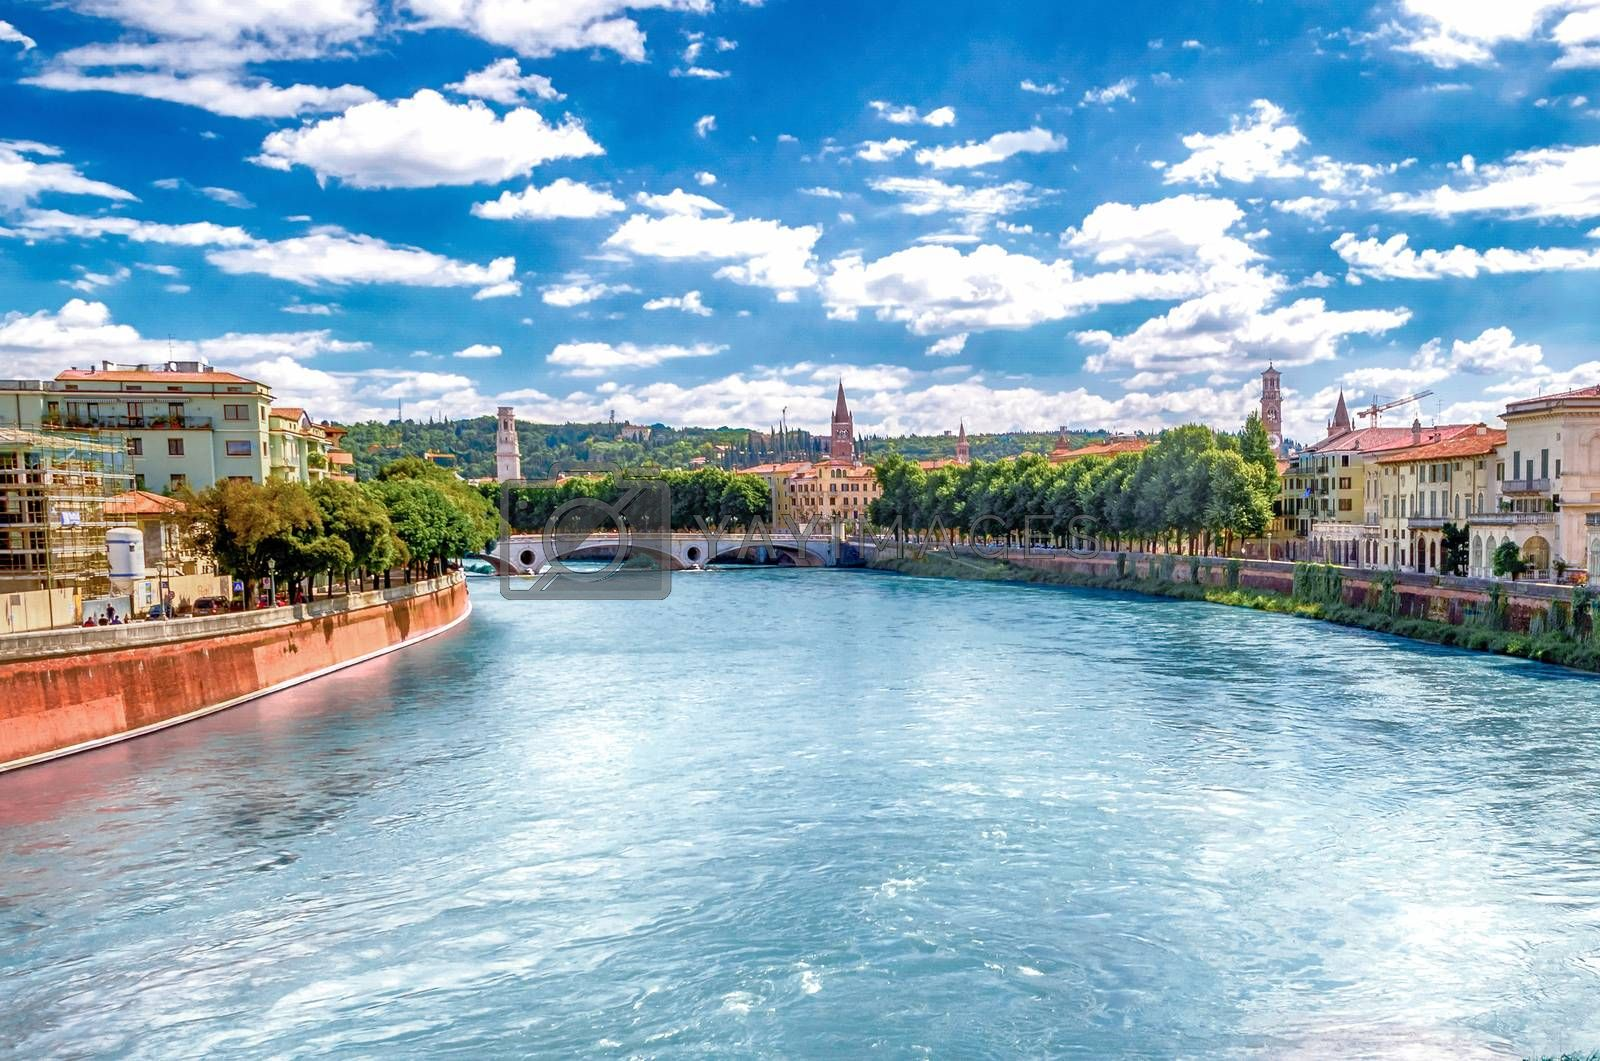 View Over Adige River in Verona, Italy by Marco Rubino